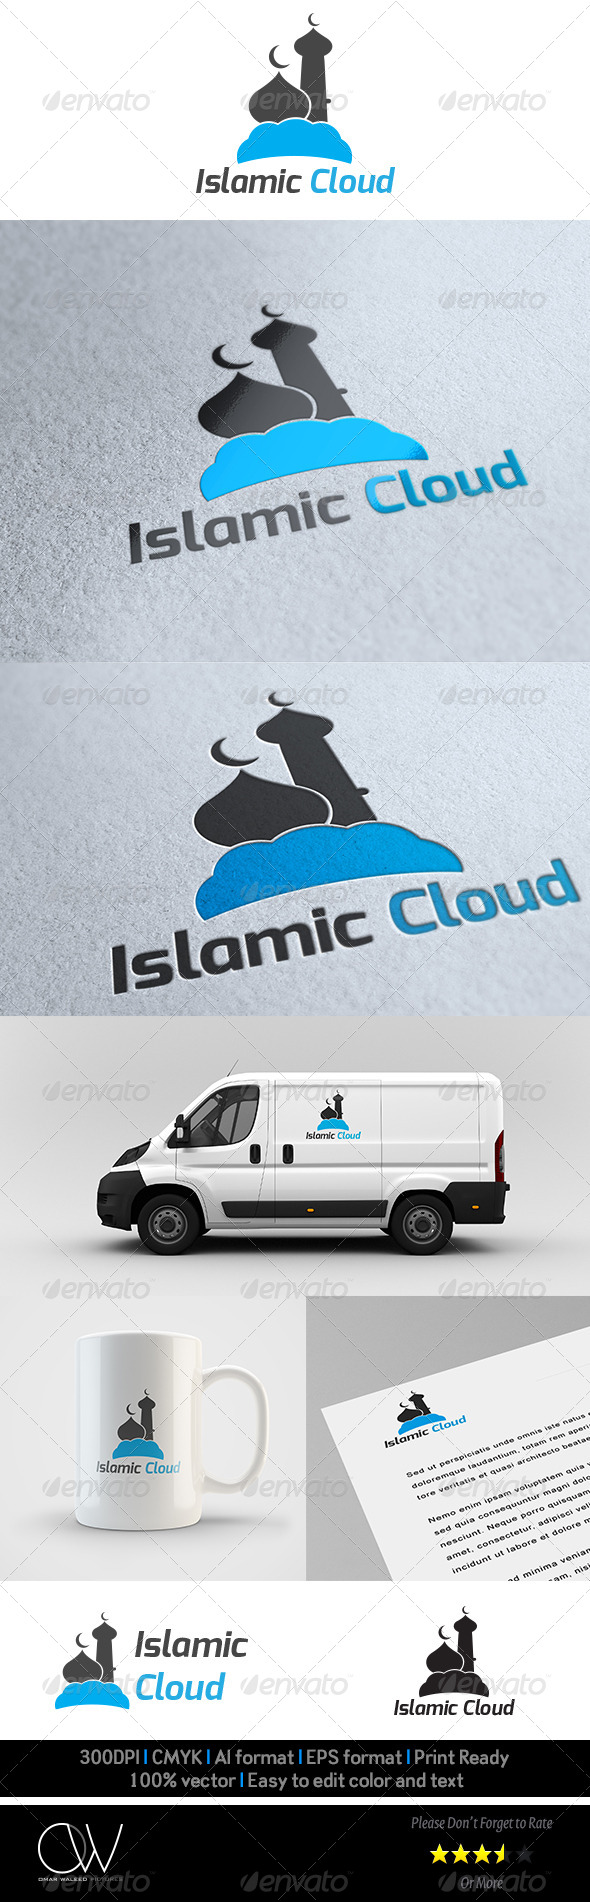 Islamic Cloud Logo Template - Vector Abstract